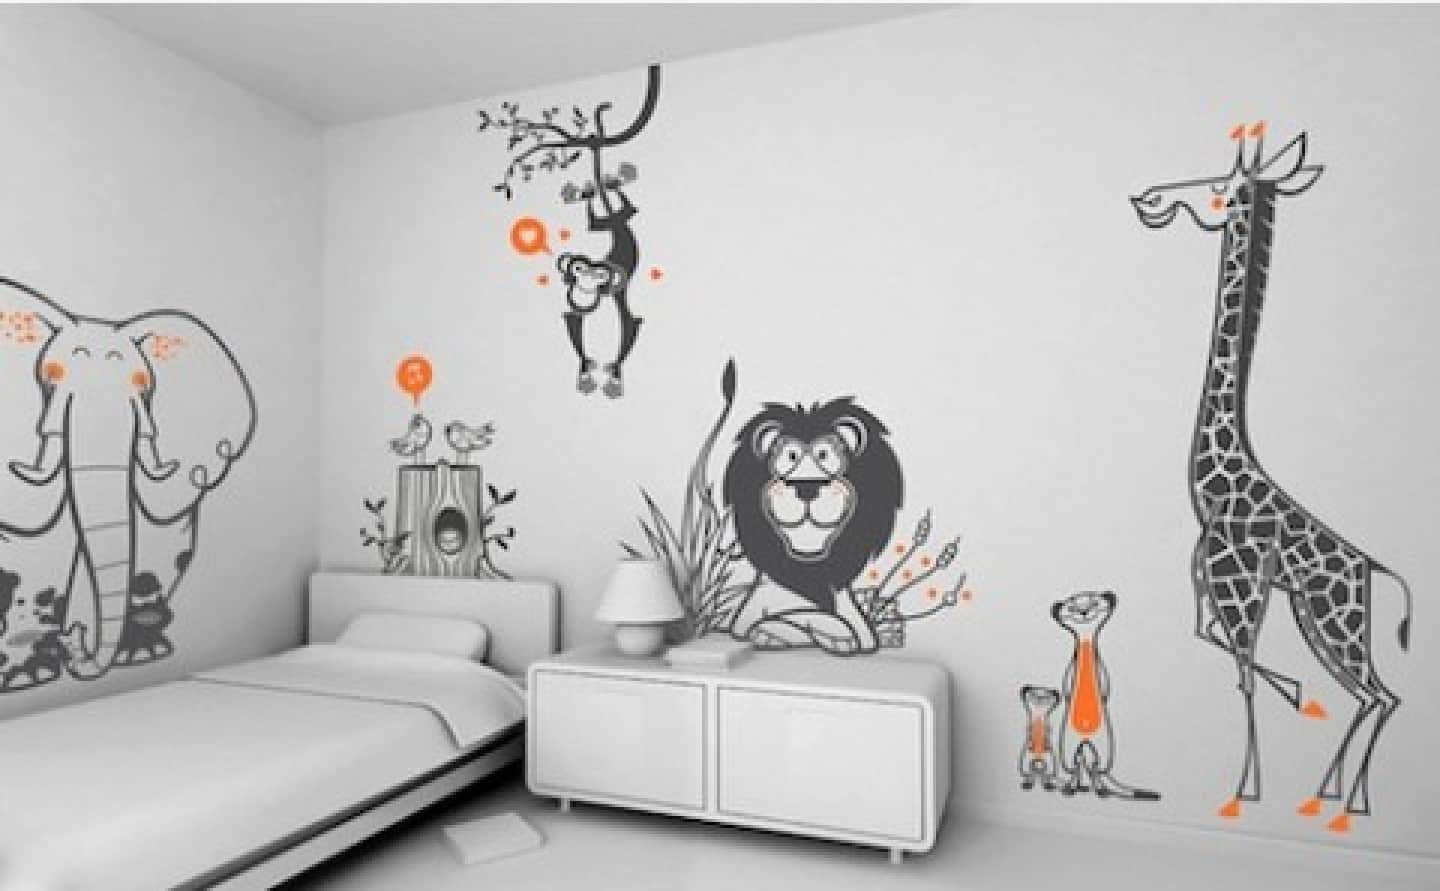 10 Brilliant Wallpaper Designs For Kids Bedrooms 58 For Your Home Decoration Ideas for Wallpaper Designs For Kids Bedrooms